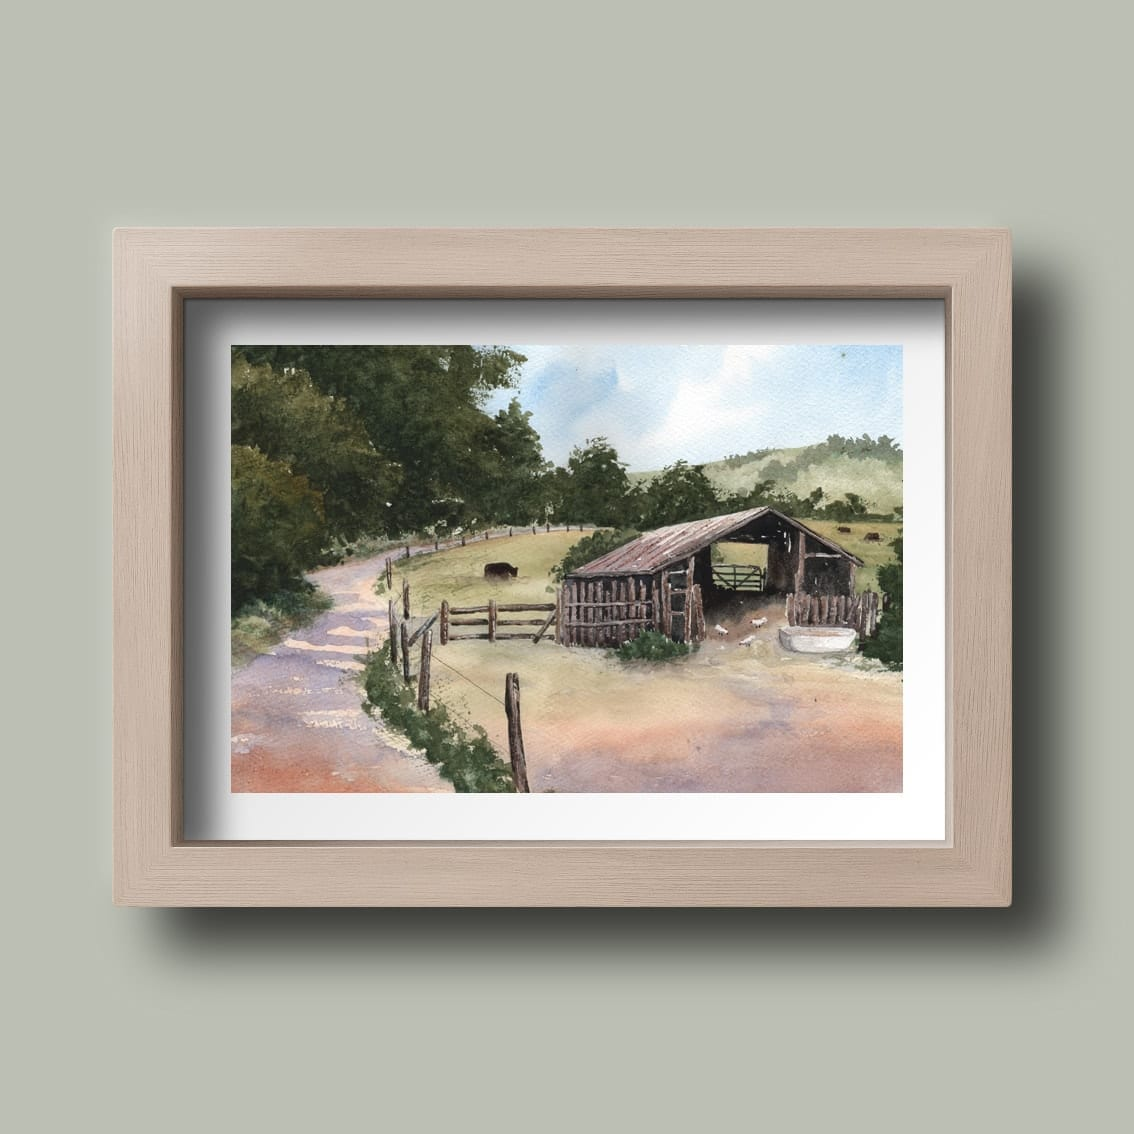 The Shed Watercolour by Nikki Rogers